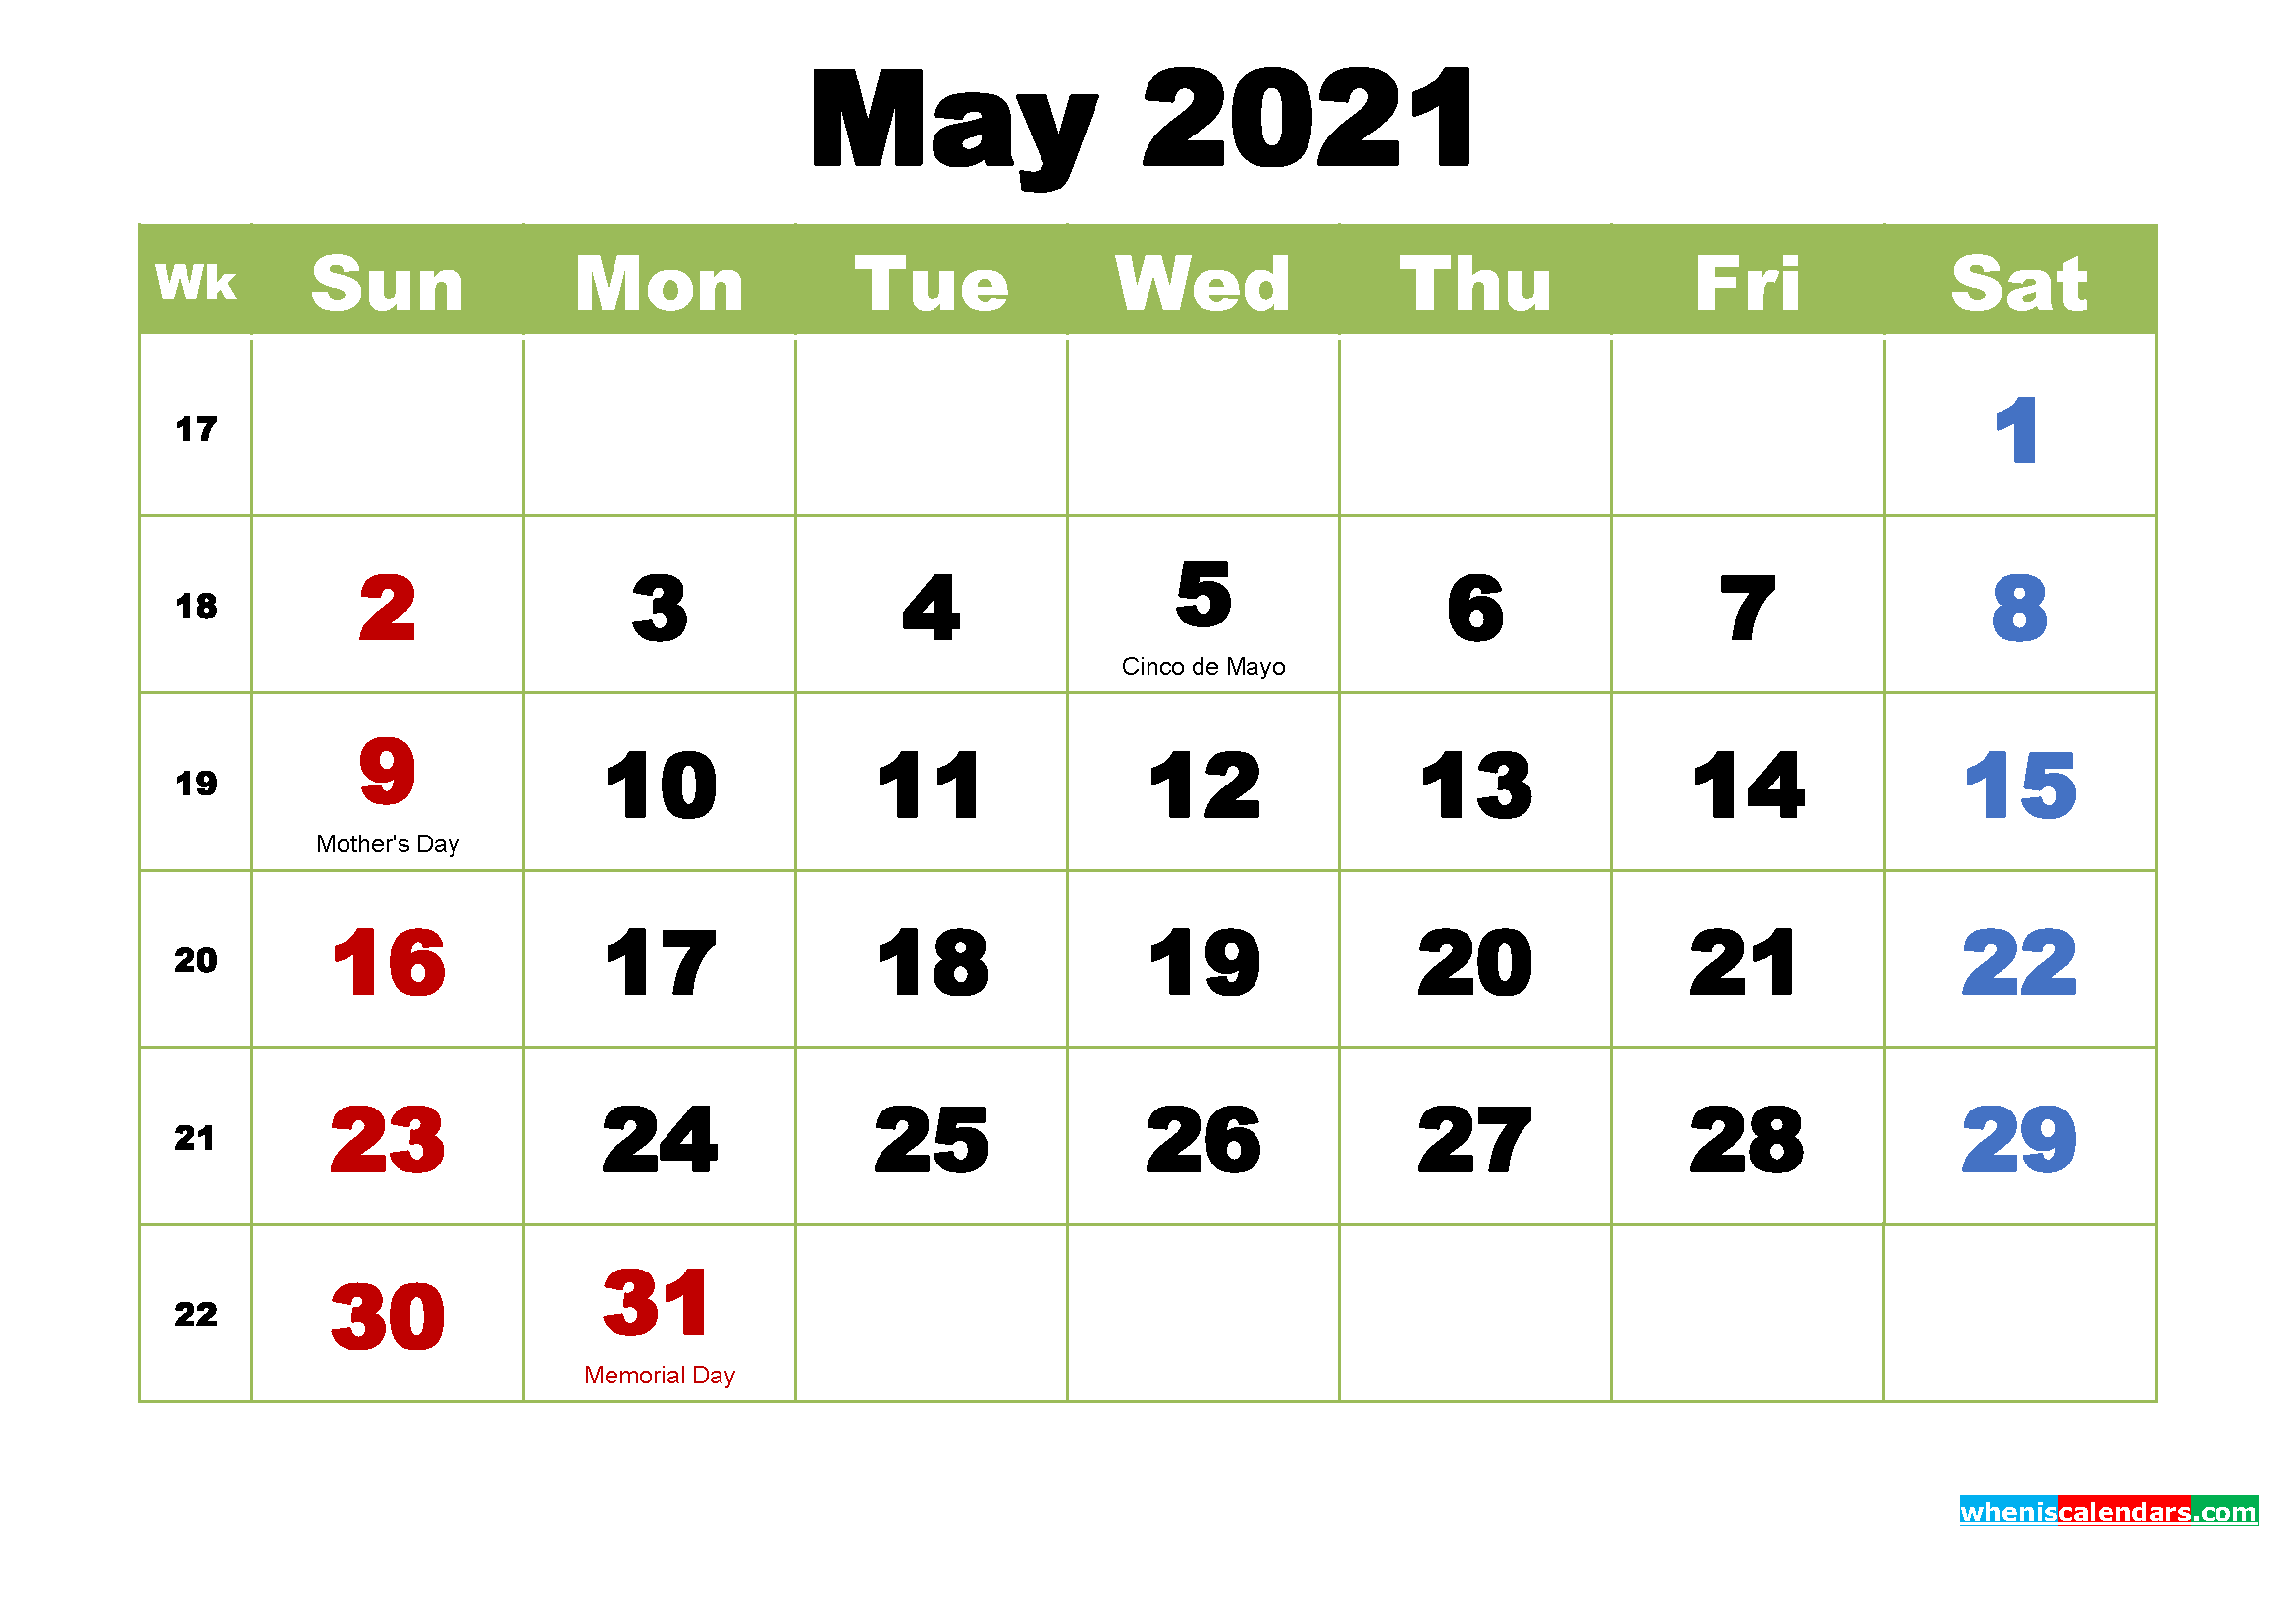 May 2021 Calendar with Holidays Wallpaper